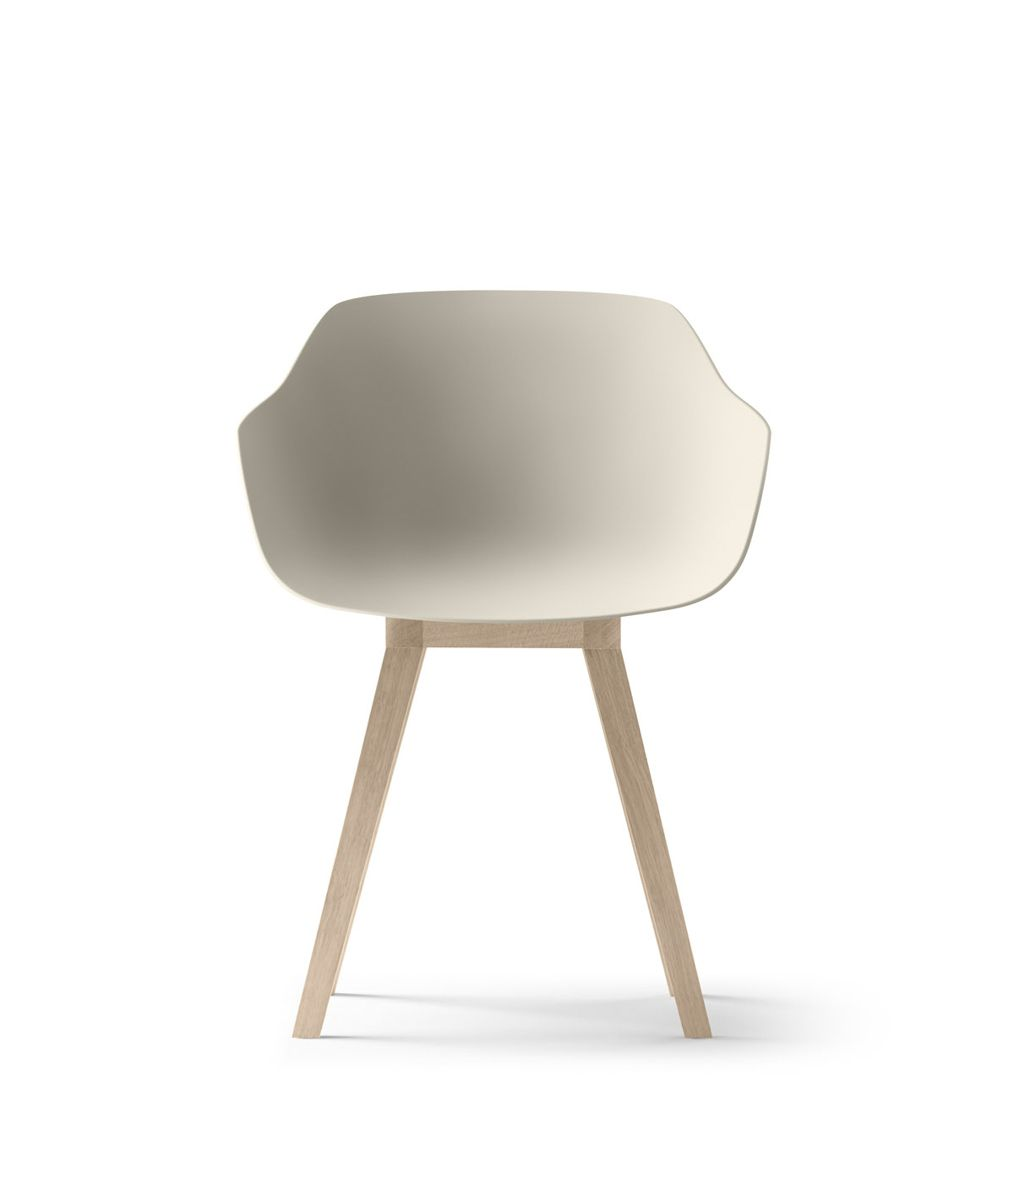 Alki Chaises Alki Kuskoa Bi Iratzoki 08 In 2019 Ingredient Driven Design